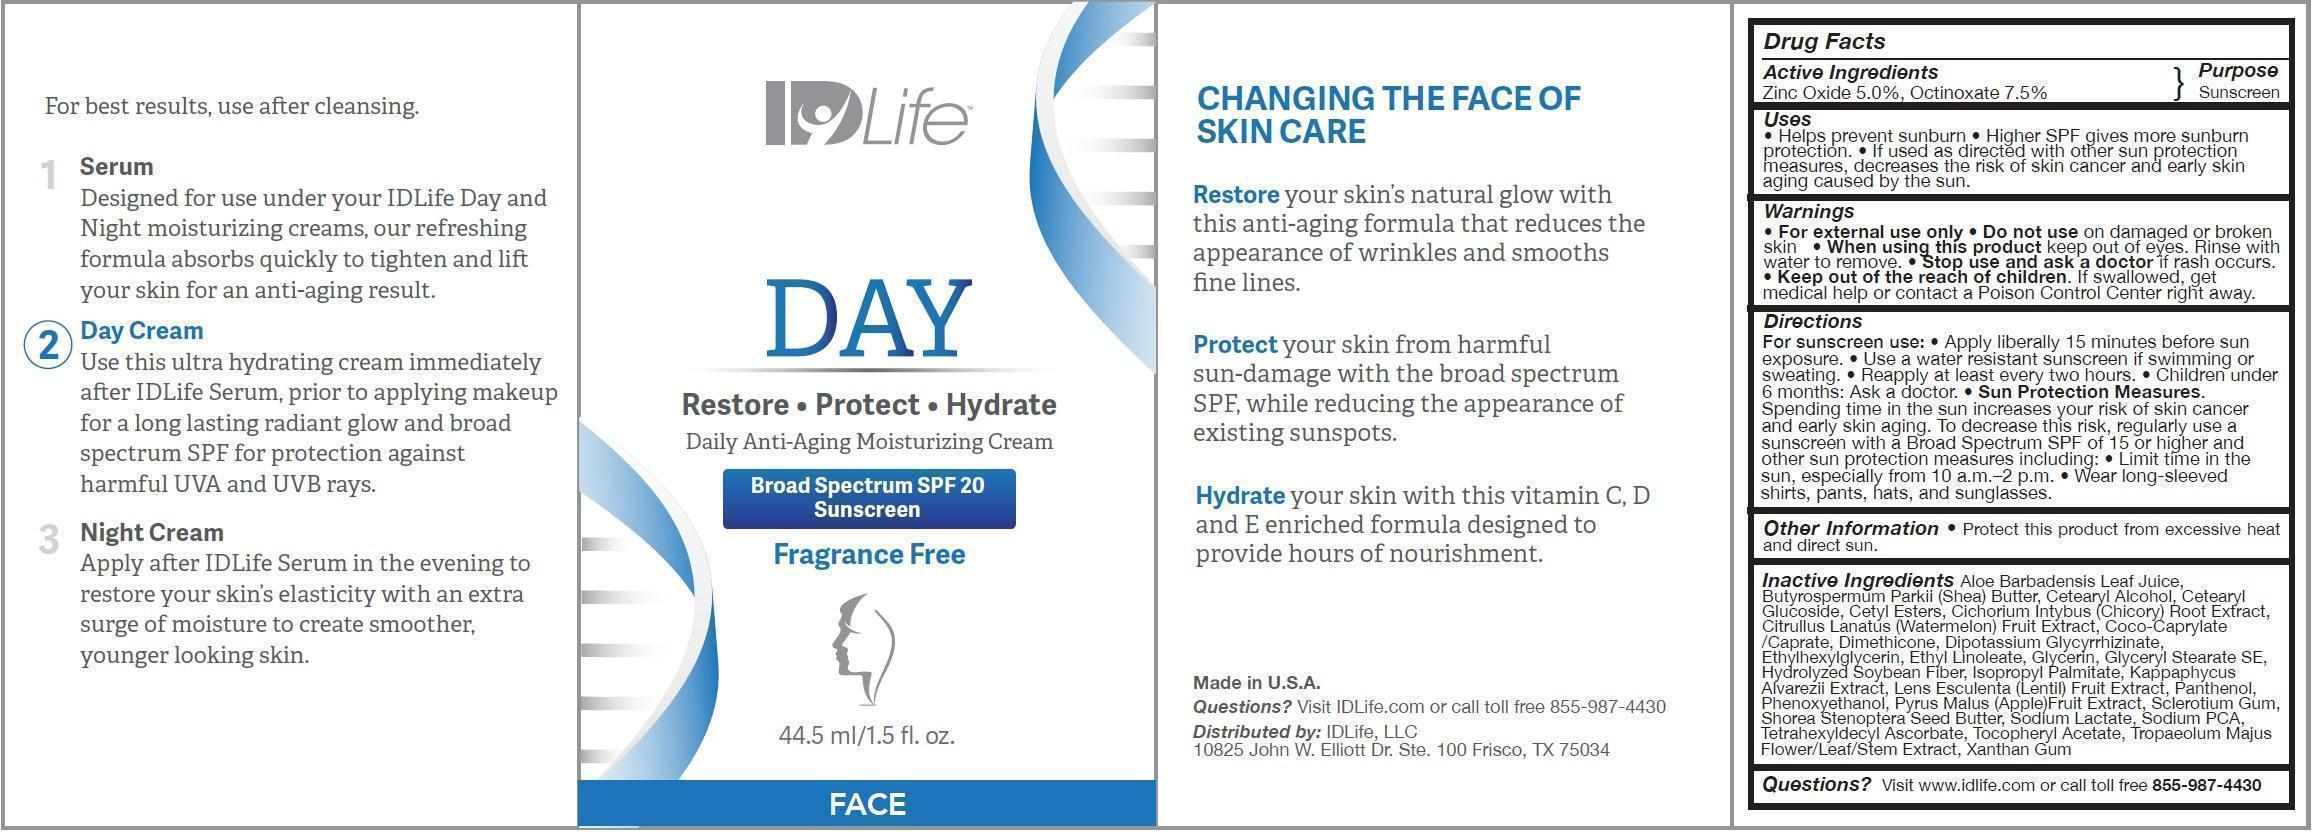 ZINC OXIDE, OCTINOXATE (DAY Daily Anti-Aging Moisturizing Face Broad Spectrum SPF 20 Sunscreen)